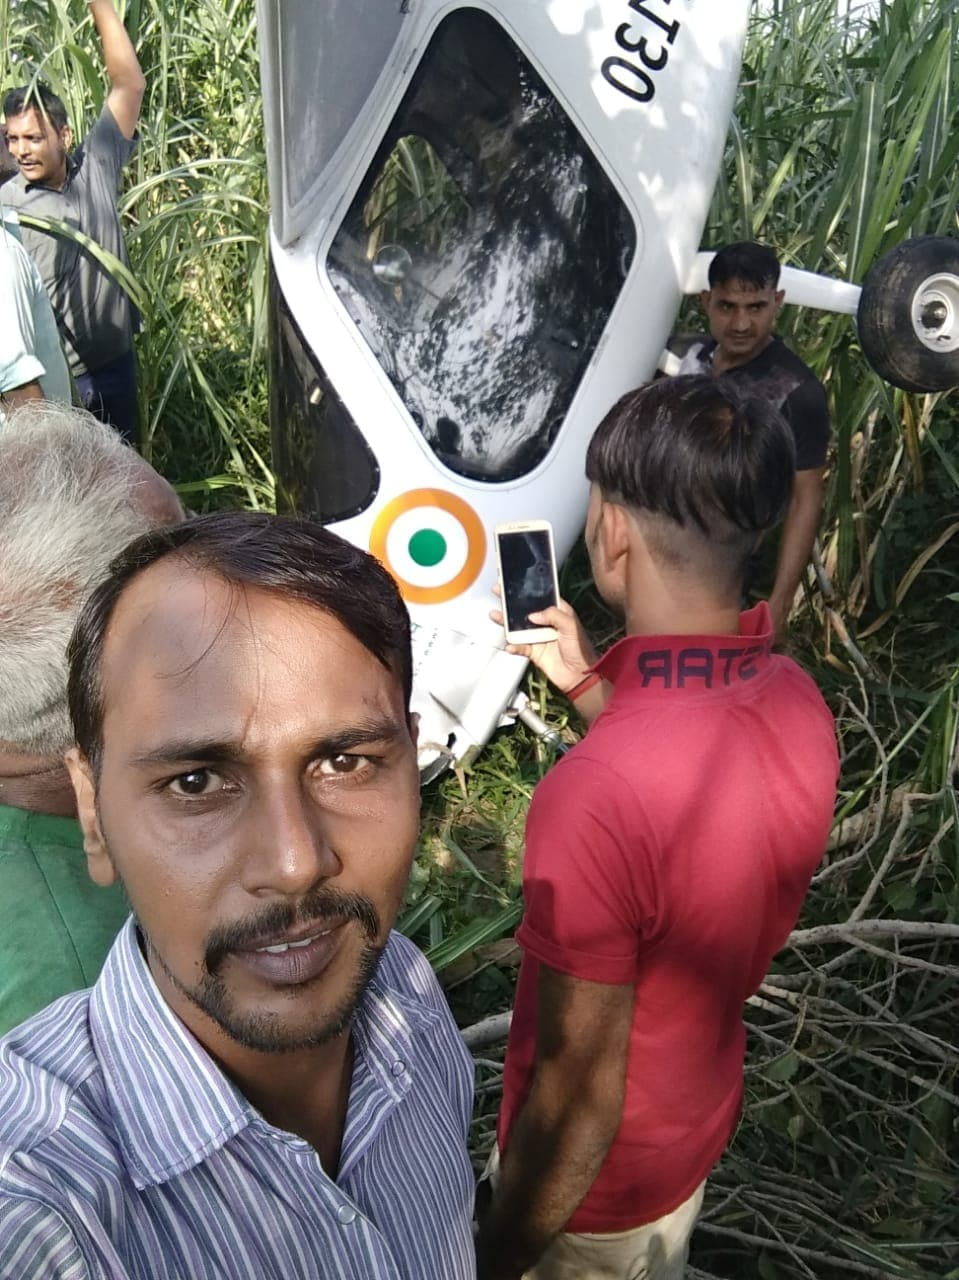 selfie with aircraft